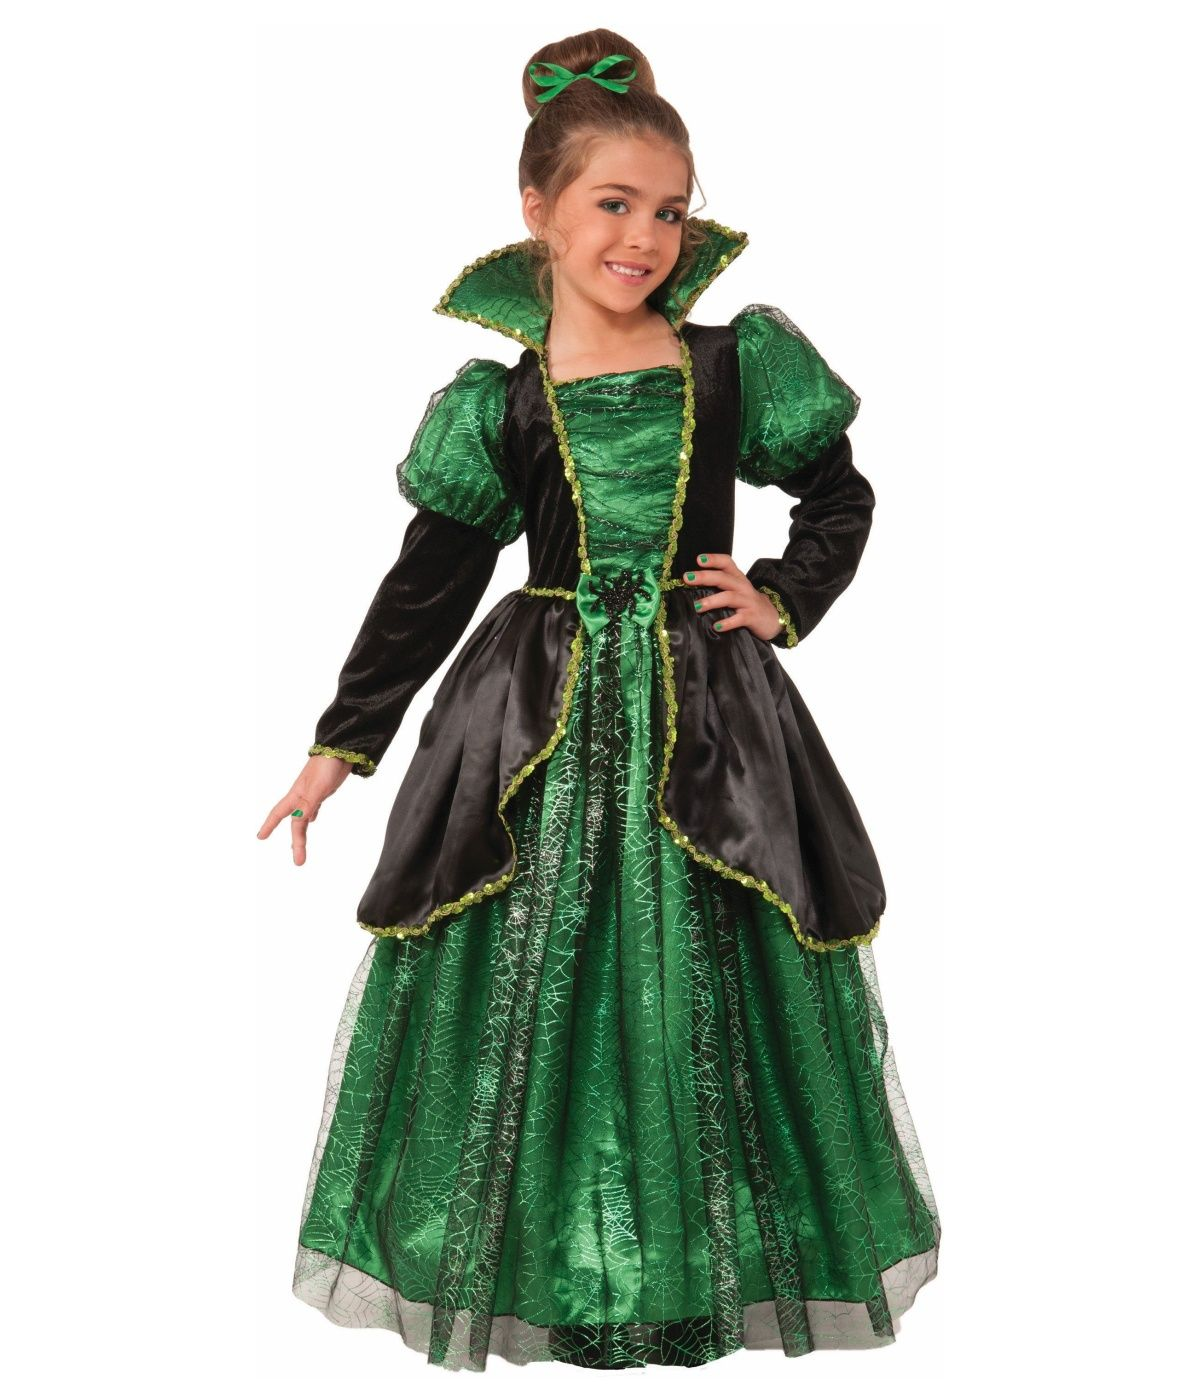 Explore Witch Outfit Witch Dress and more!  sc 1 st  Pinterest & reverse black and green. Yes collar. No criss cross | Costumes ...